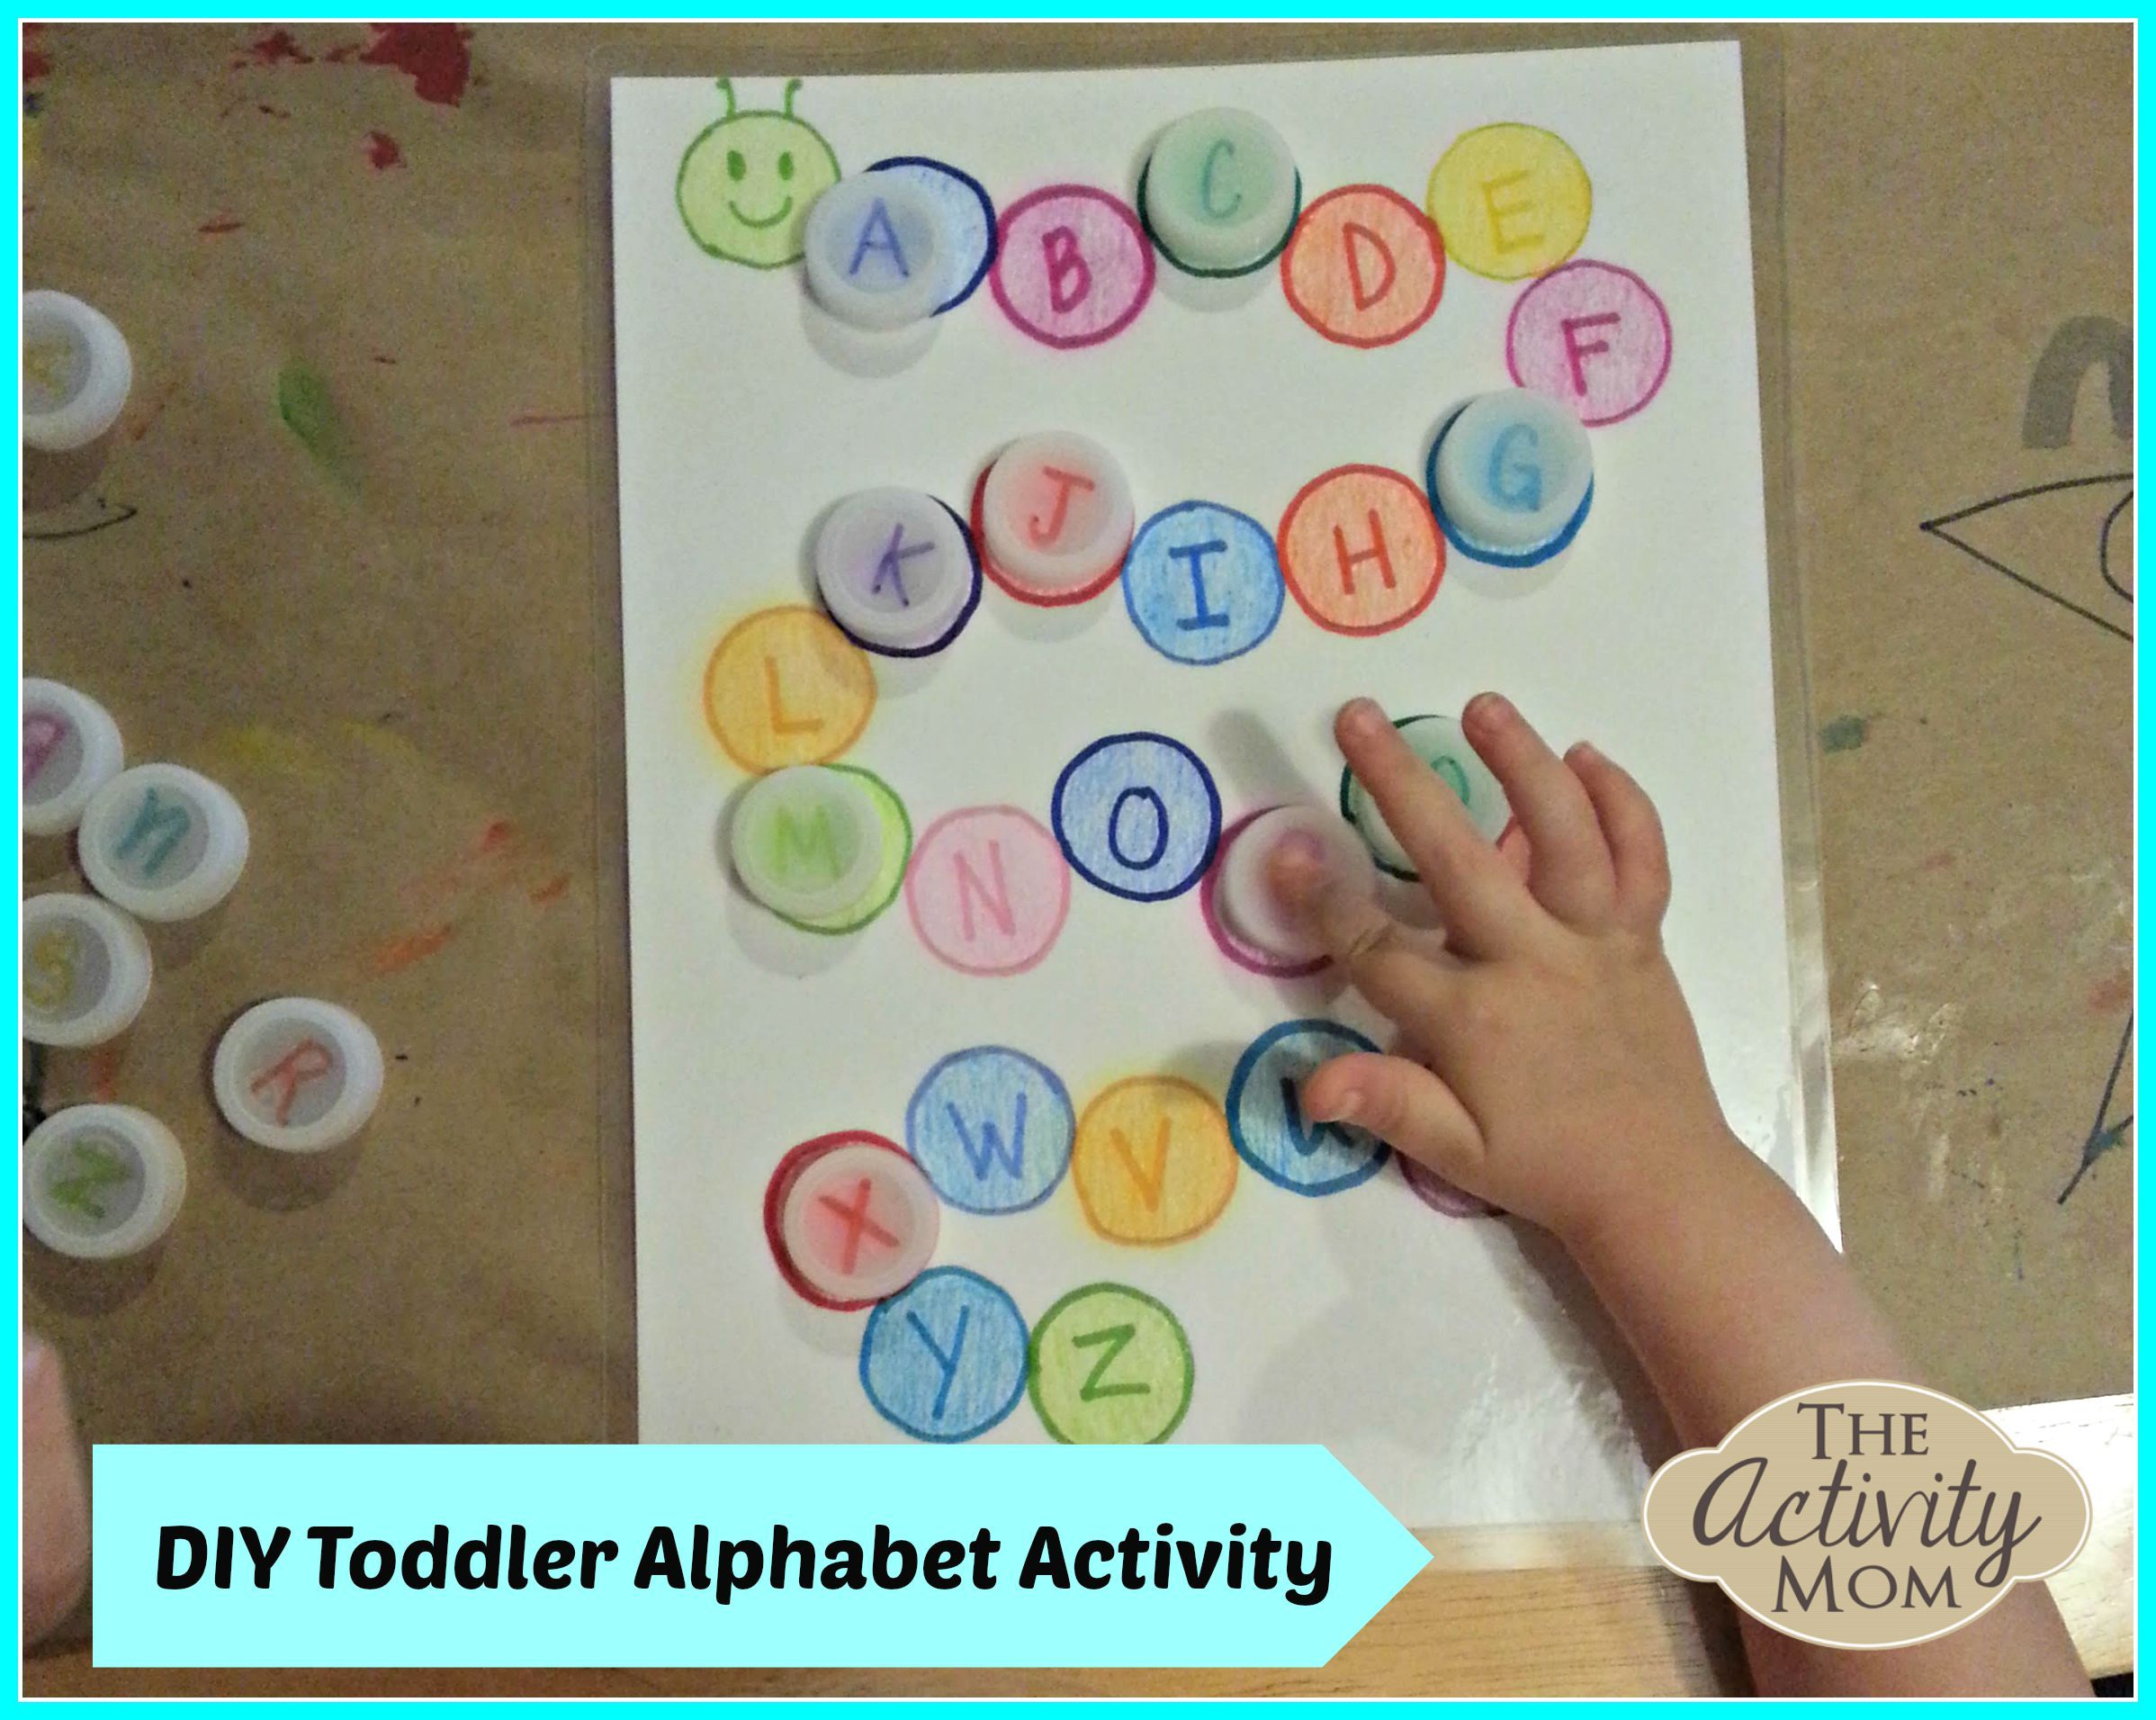 Free Toddler Alphabet Activity The Activity Mom Pinterest